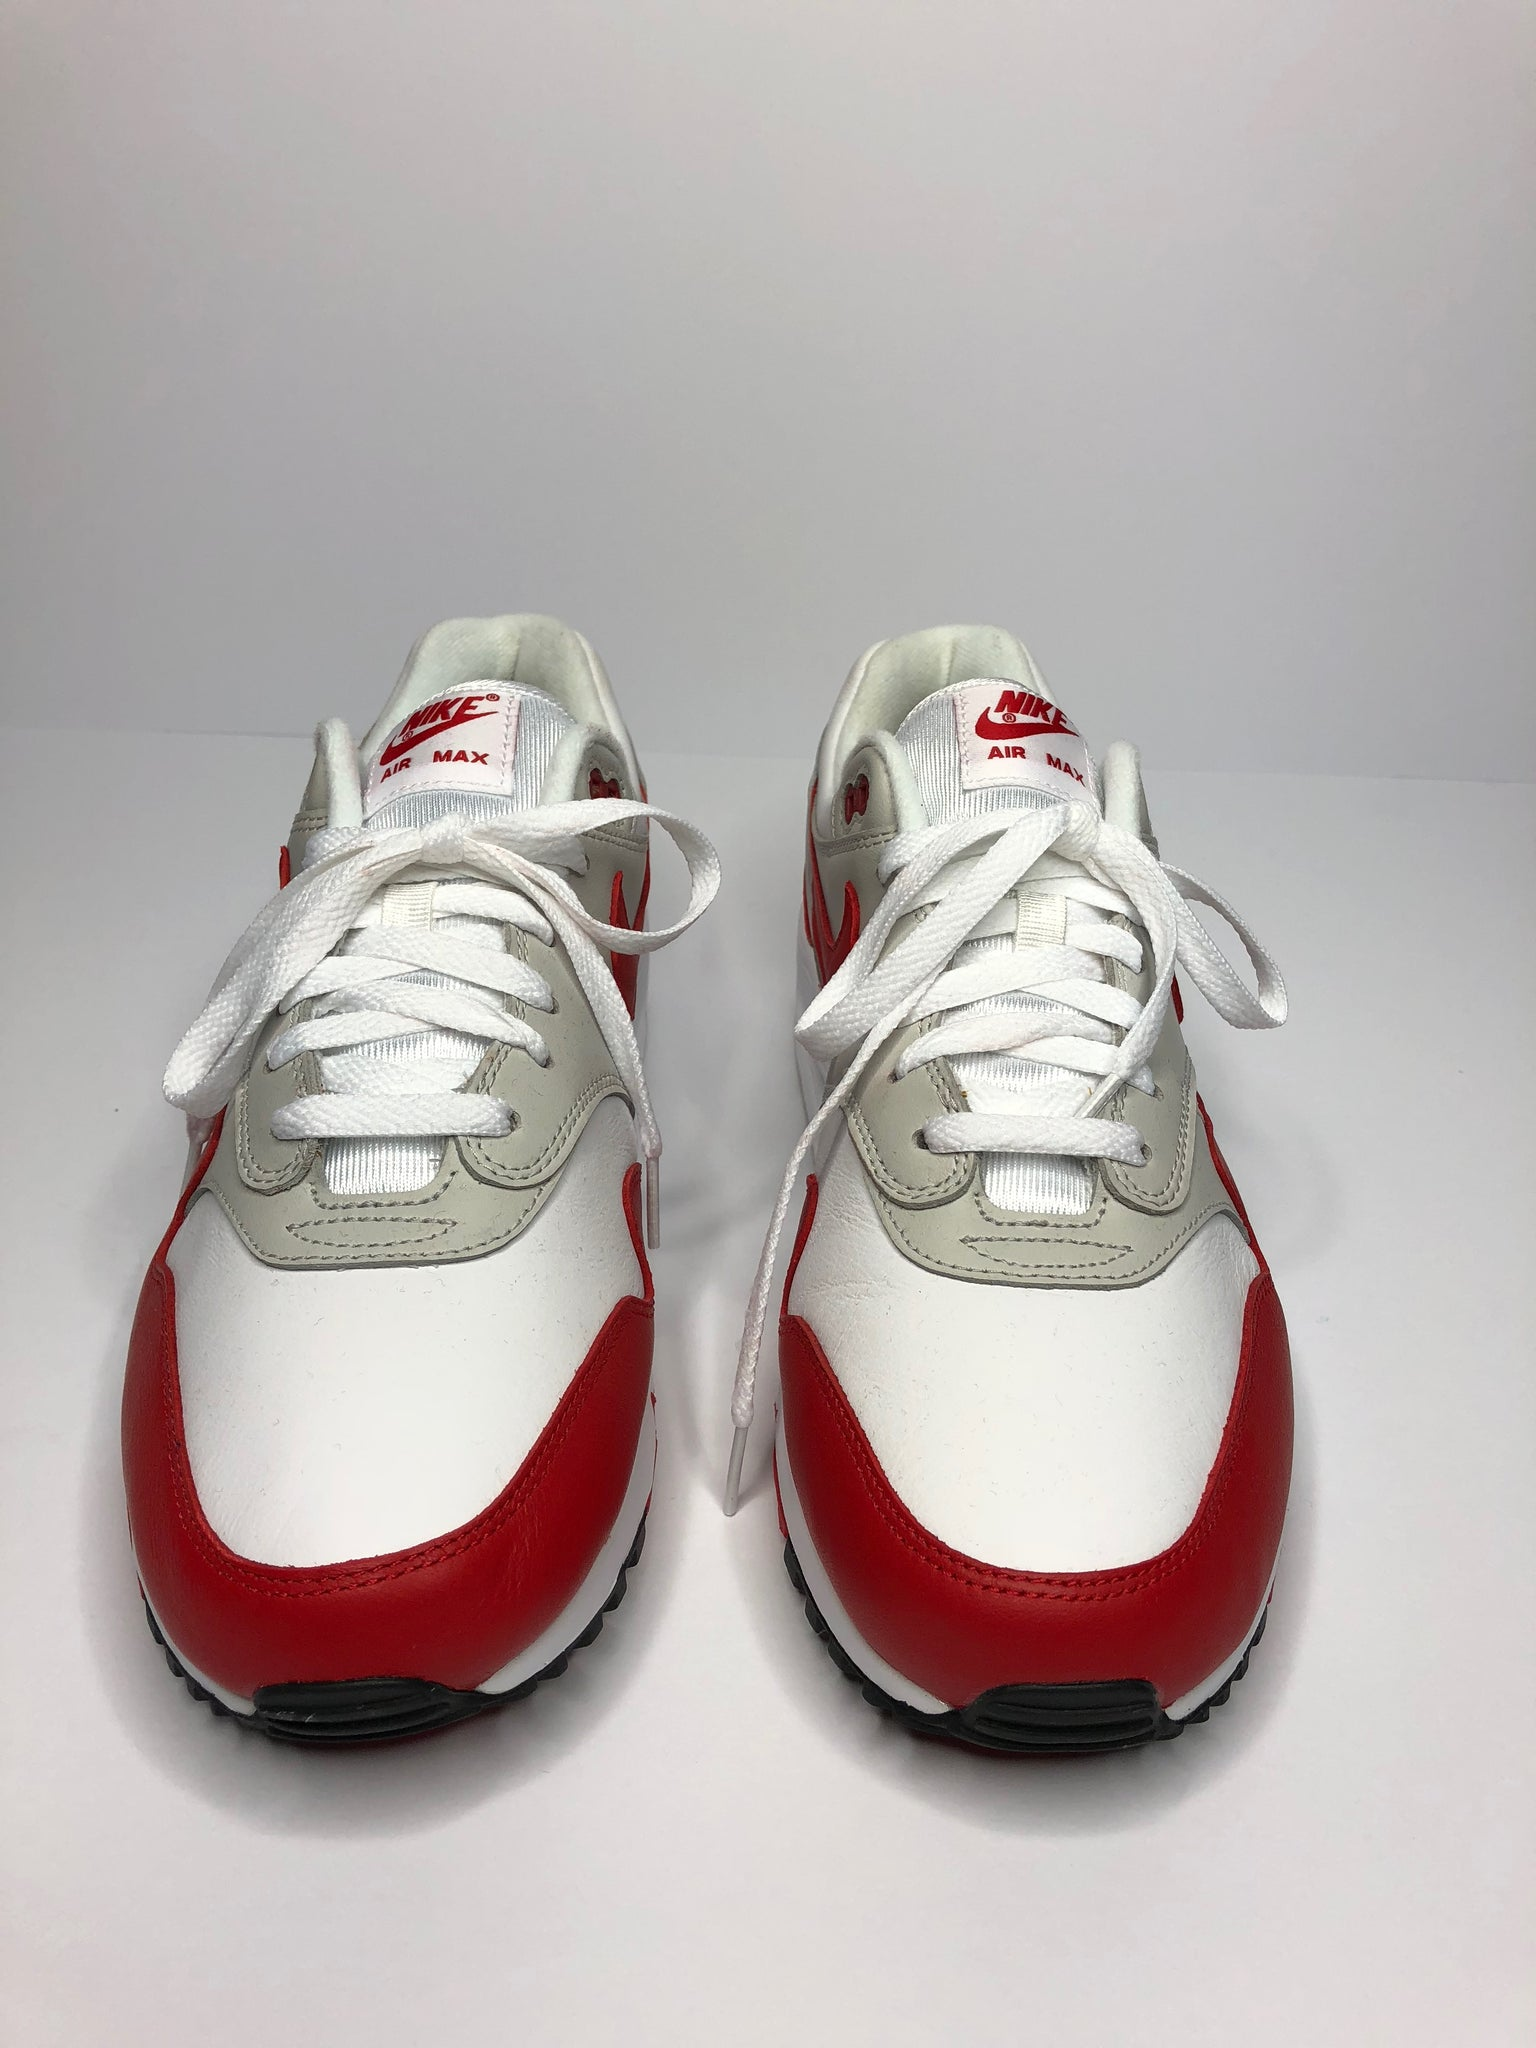 meet 1e846 9c051 ... Load image into Gallery viewer, Nike Air Max 90 1 - White University ...